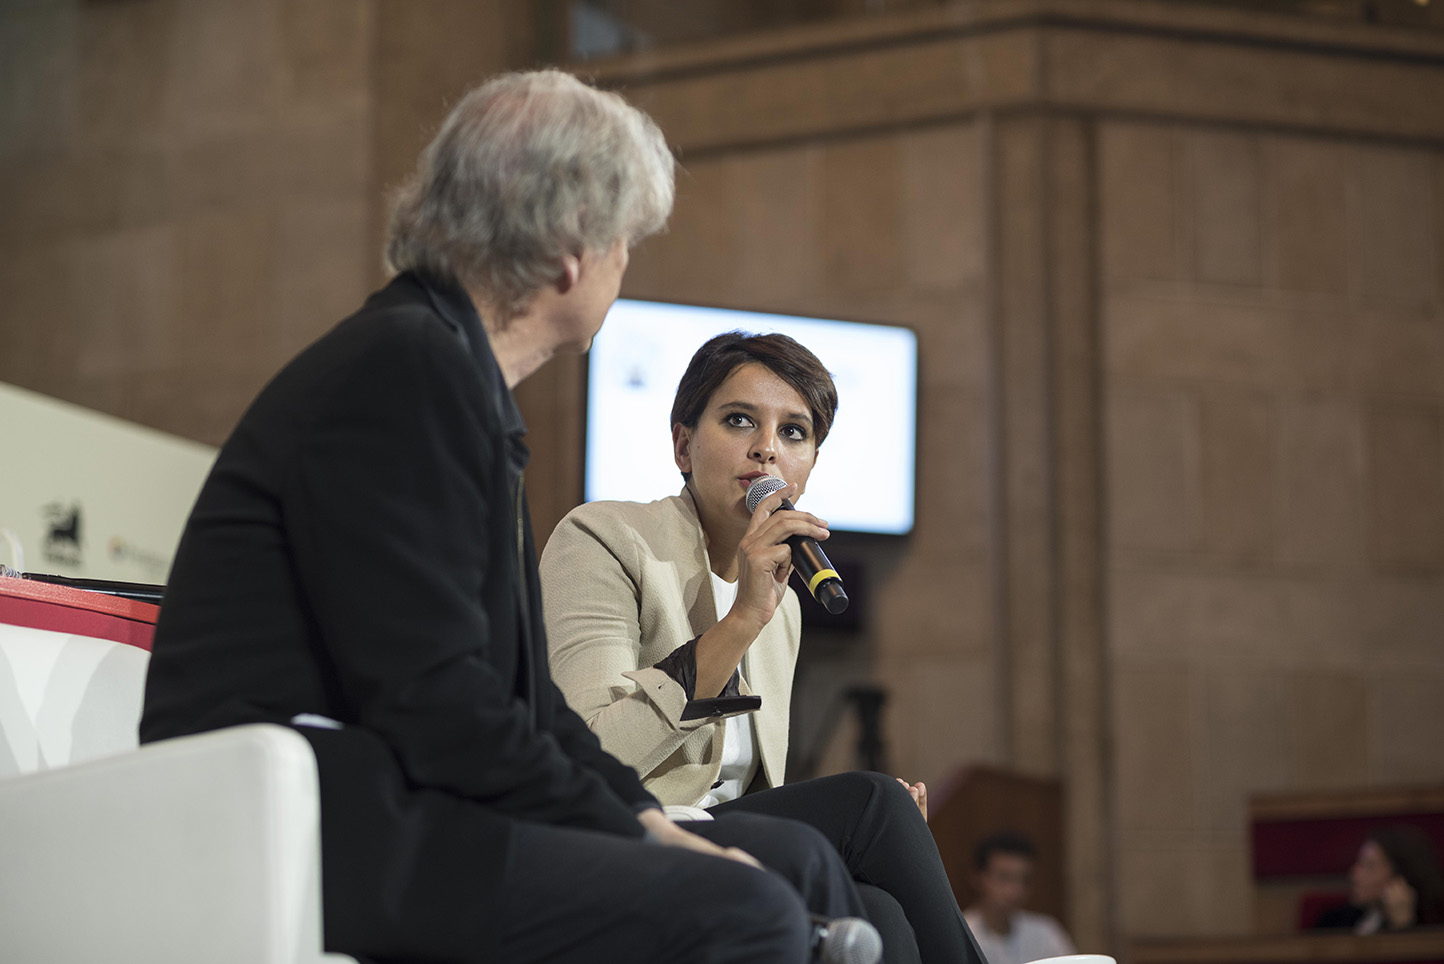 Plantu et Najat Vallaud-Belkacem, Ministre de l'Education Nationale